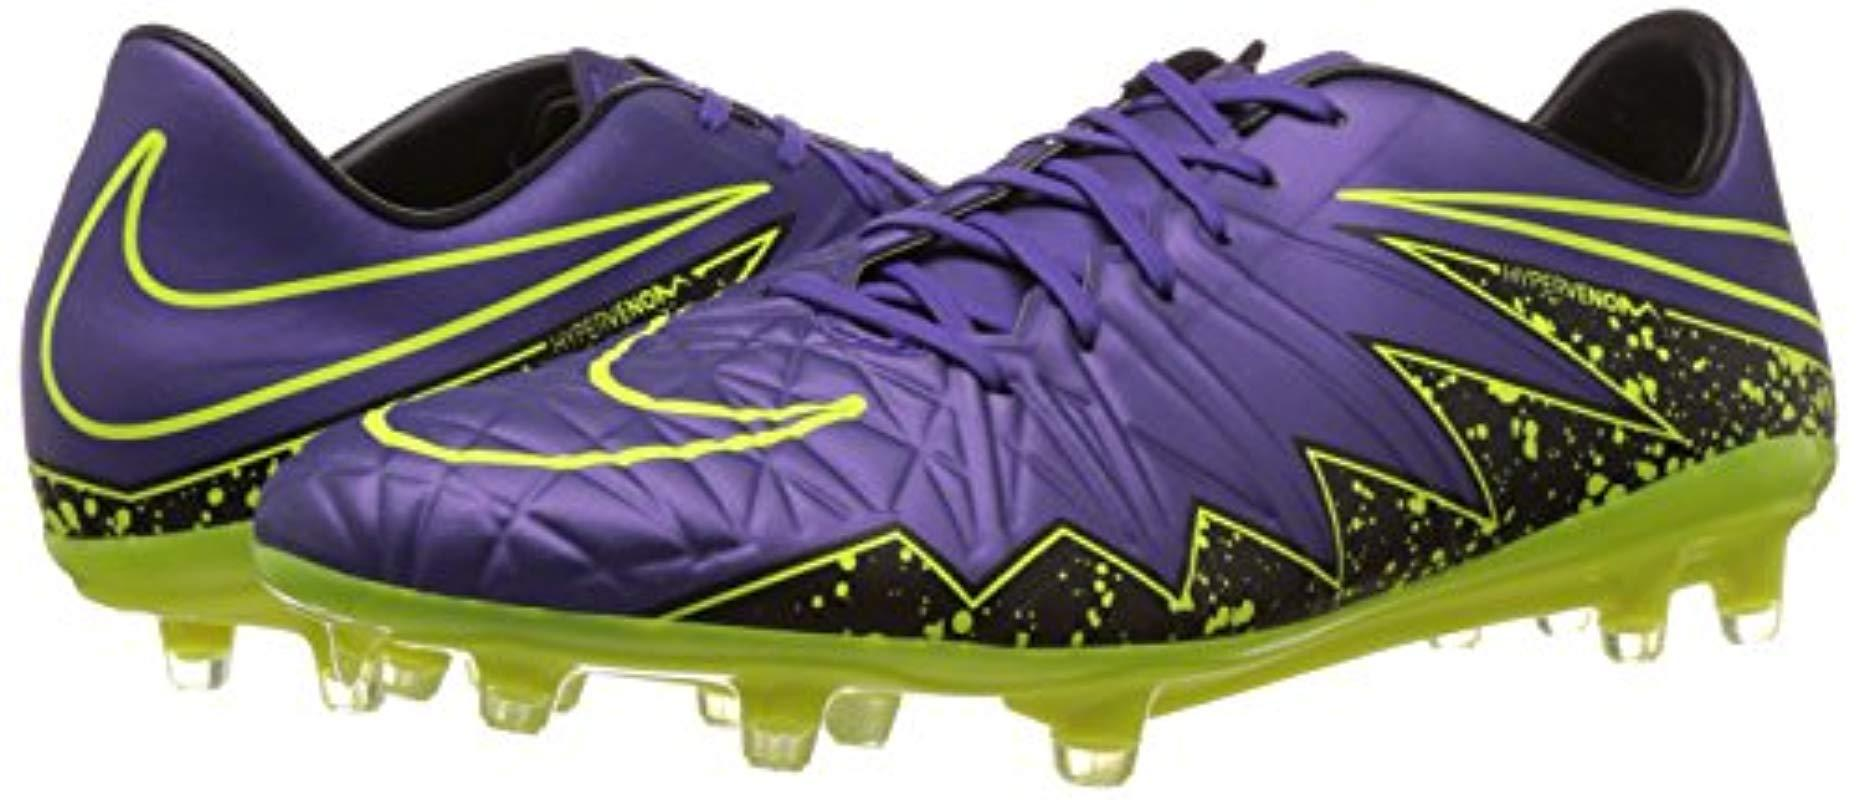 Desbordamiento Temeridad Sombreado  Nike Hypervenom Phinish Fg Football Boots in Purple Purple Yellow (Purple)  for Men - Lyst